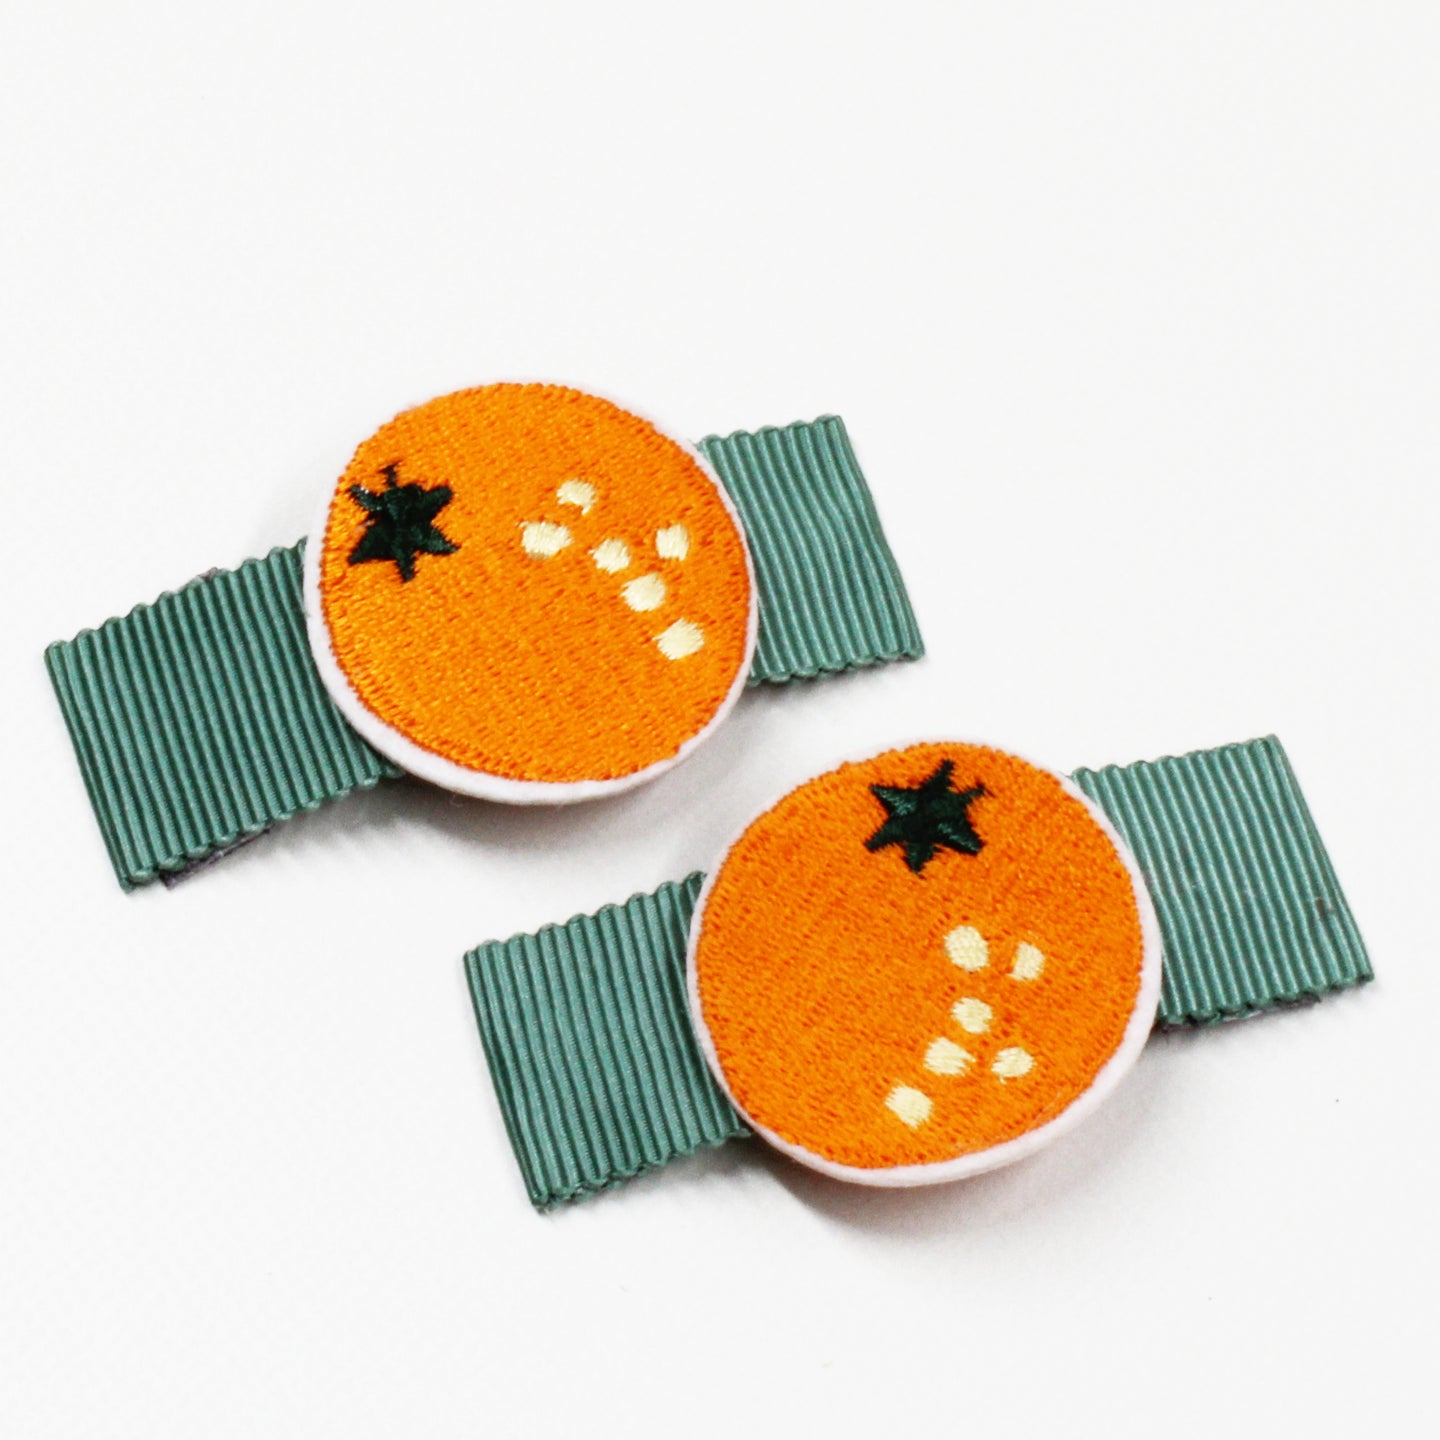 Fabric Fruits Hair Clips - 1 Pair Orange